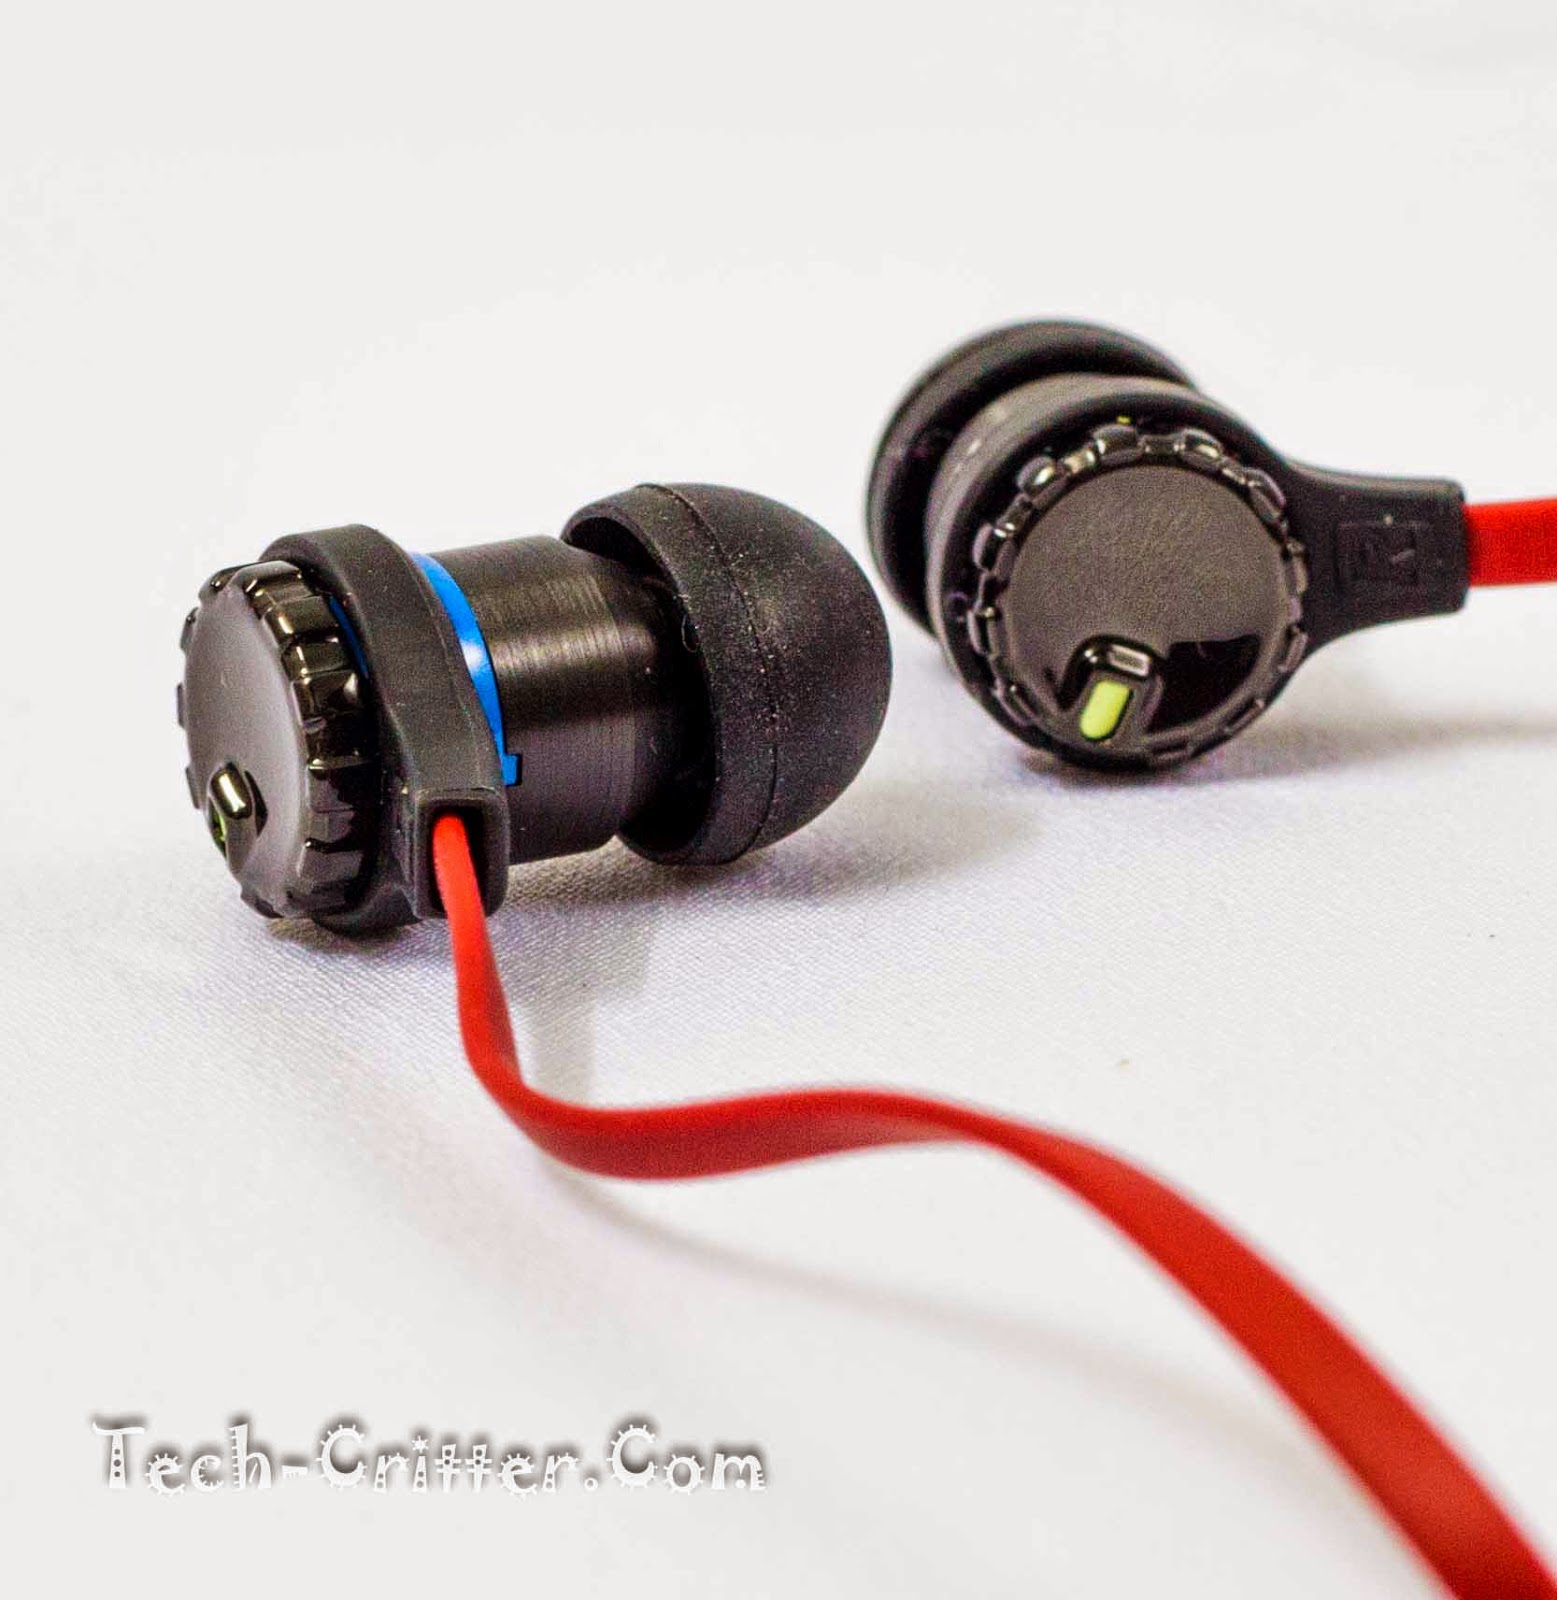 Unboxing & Review: CM Storm Resonar Gaming Earphone 38